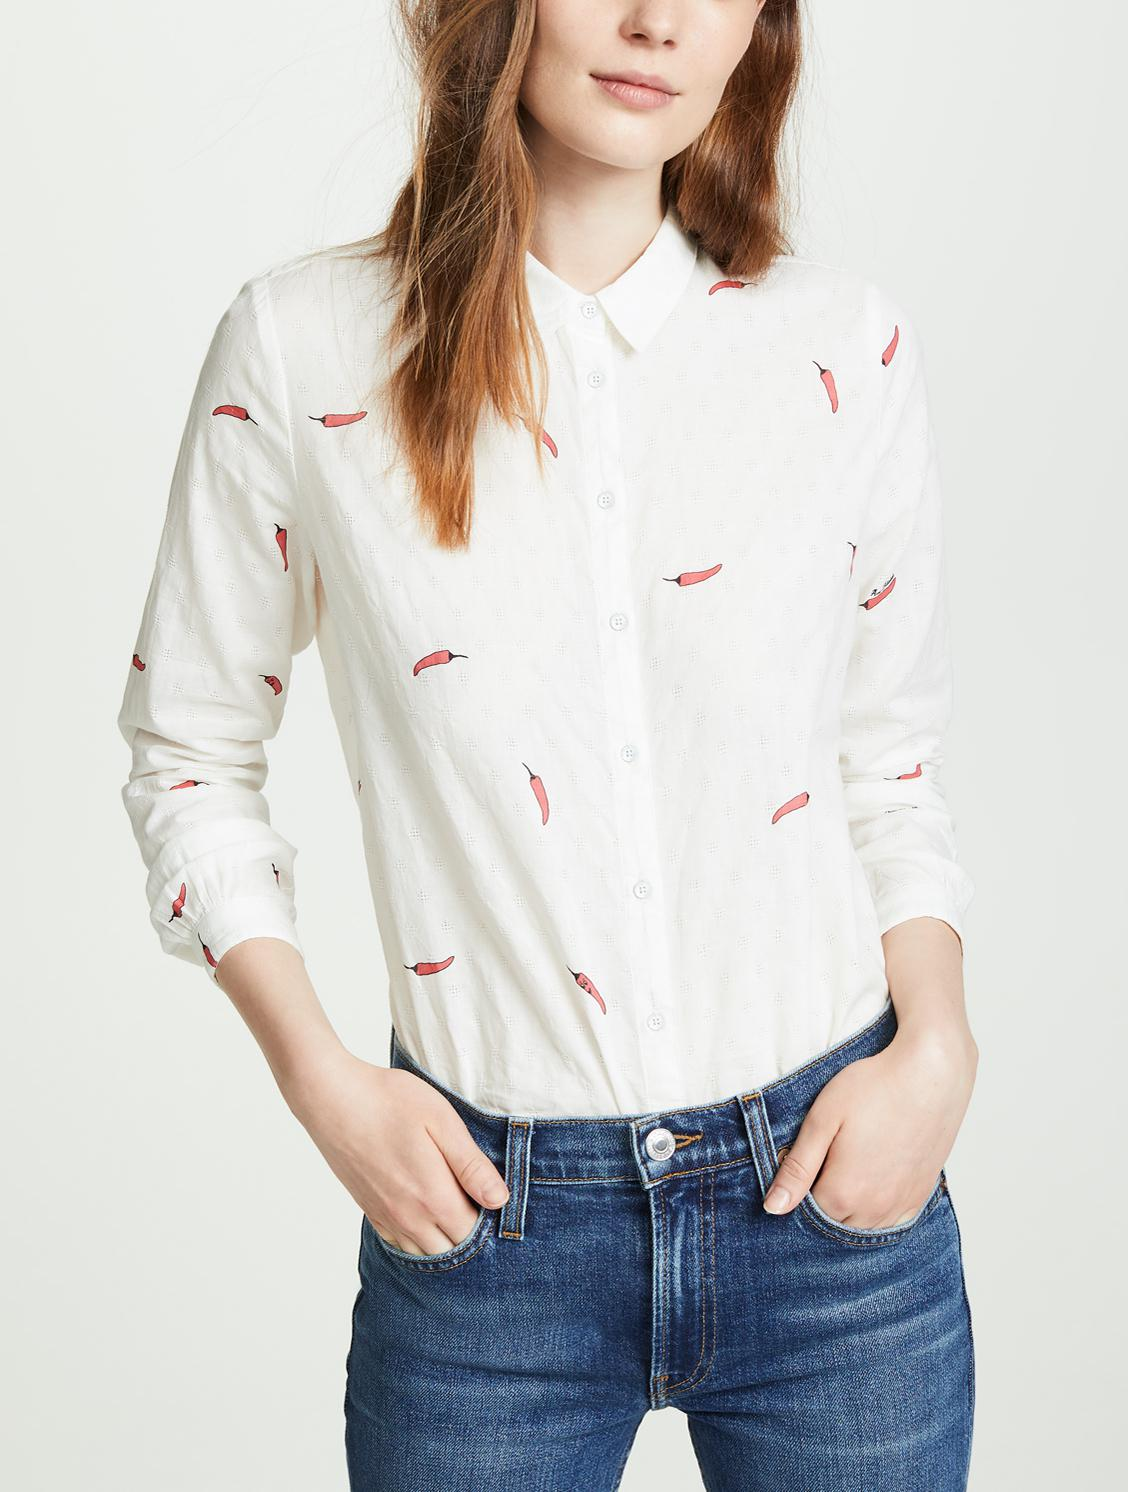 rent Scotch & Soda blouses